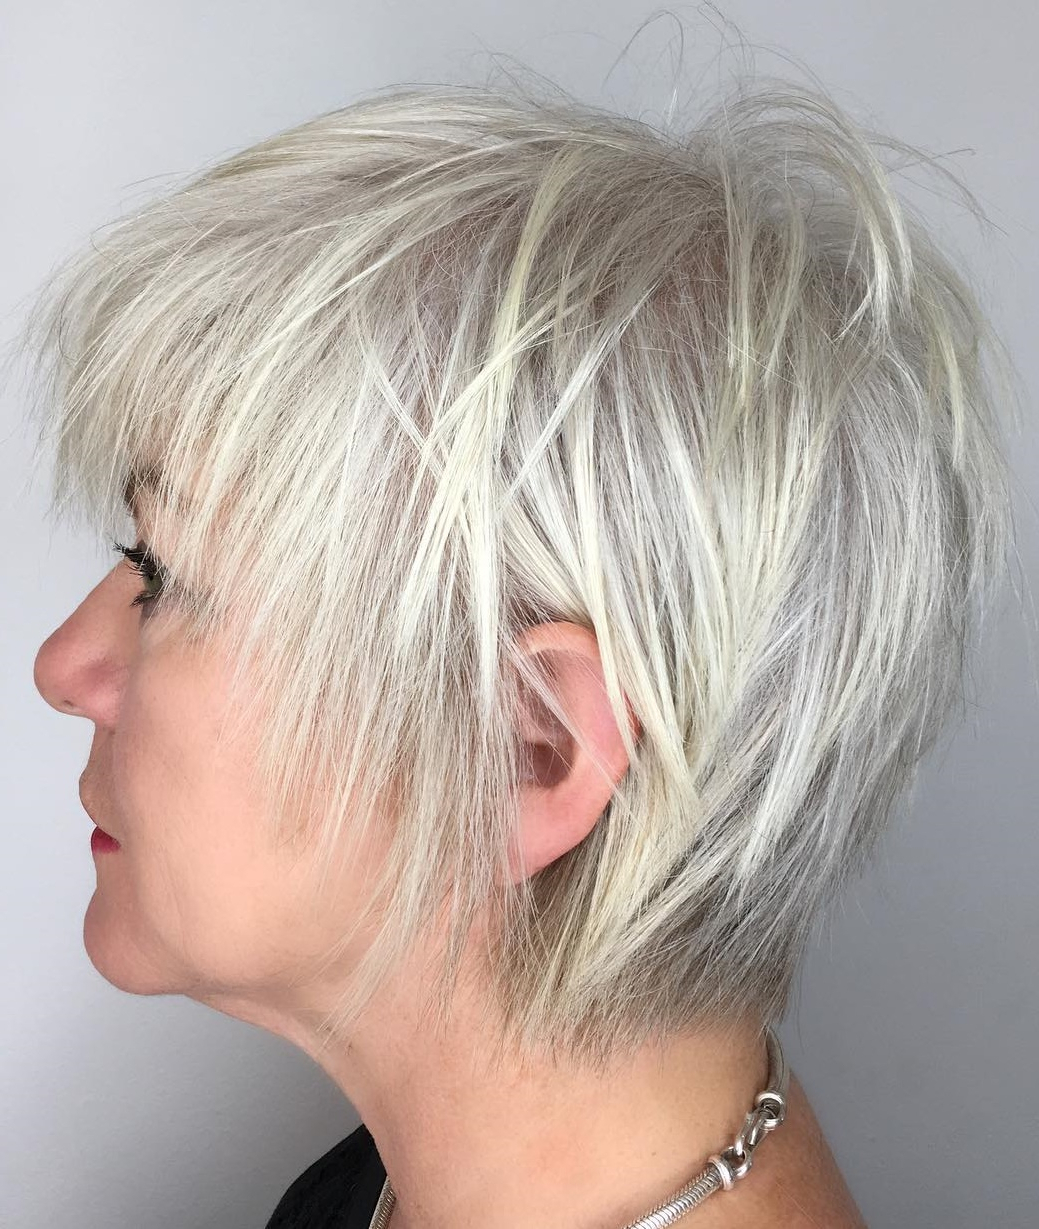 60 Trendiest Hairstyles And Haircuts For Women Over 50 In 2019 Inside Voluminous Short Bob Haircuts (View 6 of 20)